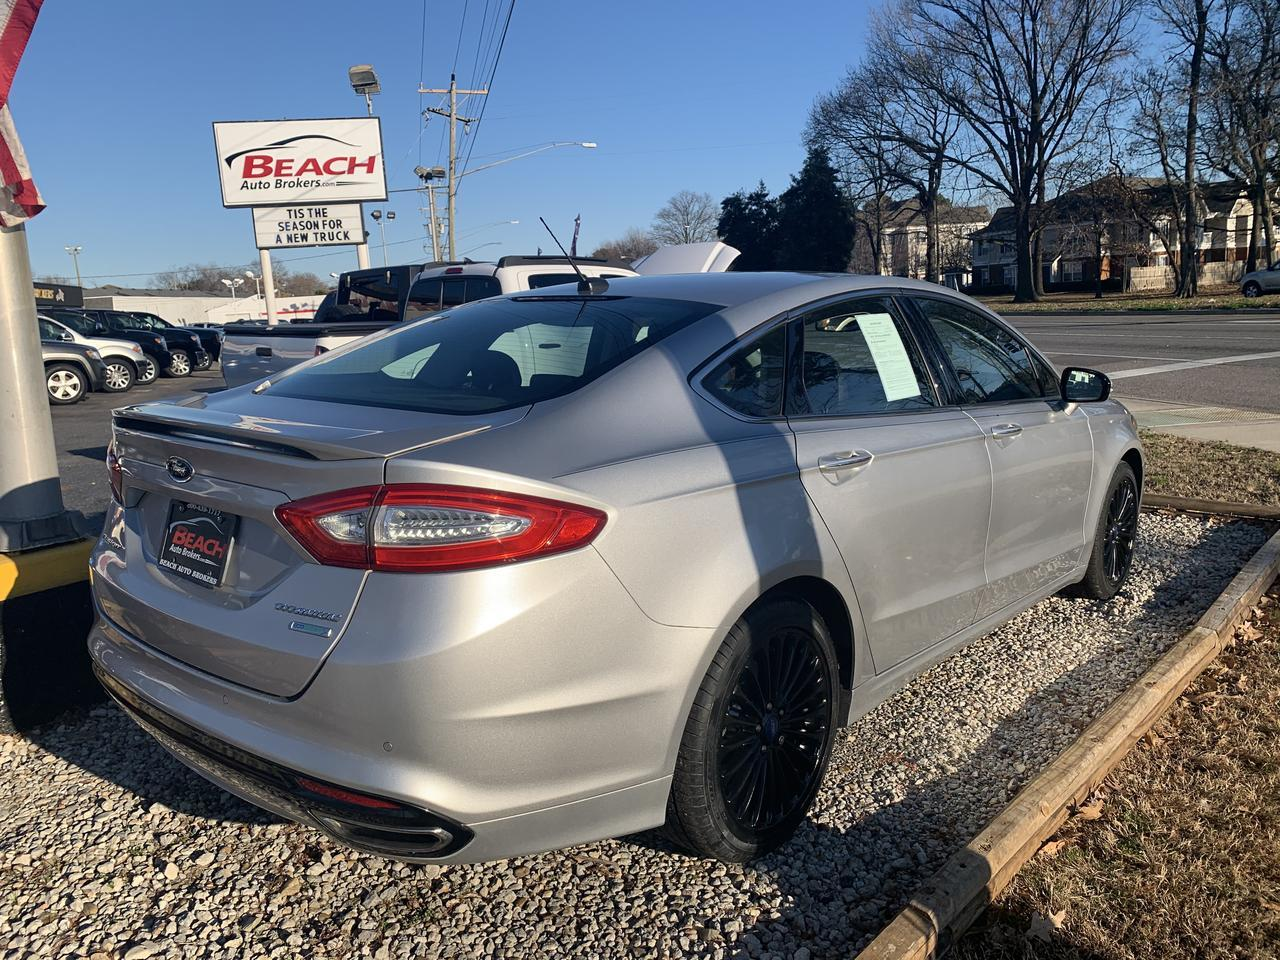 2013 FORD FUSION TITANIUM, WARRANTY, LEATHER, SUNROOF, REMOTE START, NAV, BACKUP CAM, LOW MILES, CLEAN CARFAX! Norfolk VA